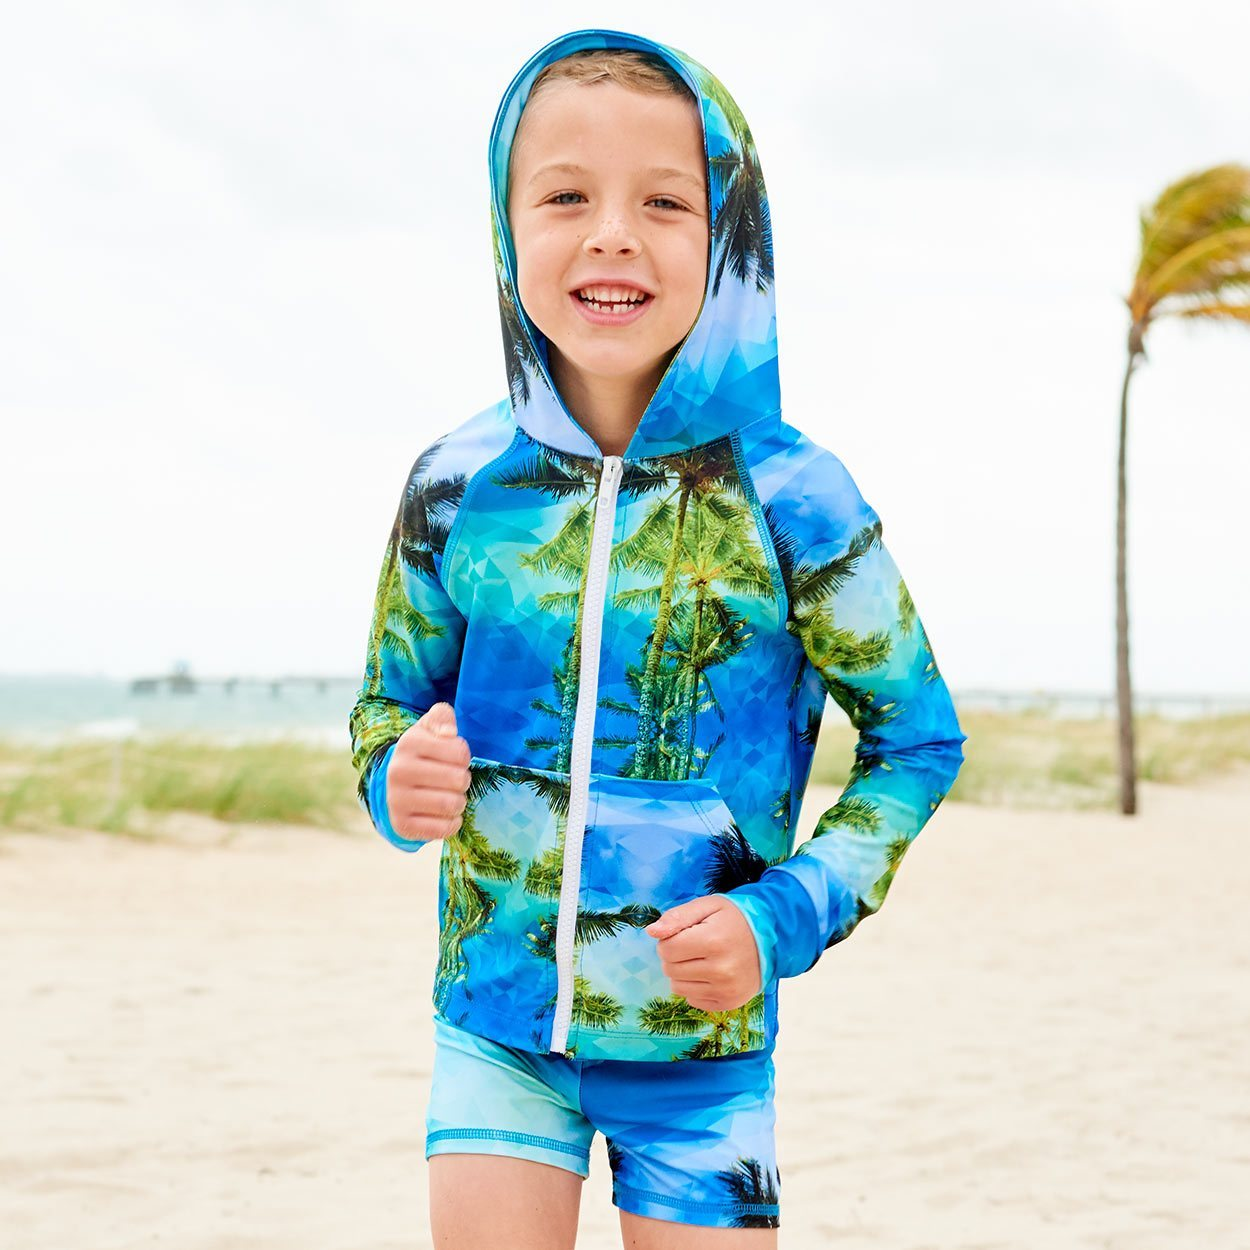 Palm Trees Hybrid Shorts Upf50 Kids Boys Size 2 12 Green Blue Geo Tropical Boy Jogging On The Sand On A Sunny Day Sunpoplife